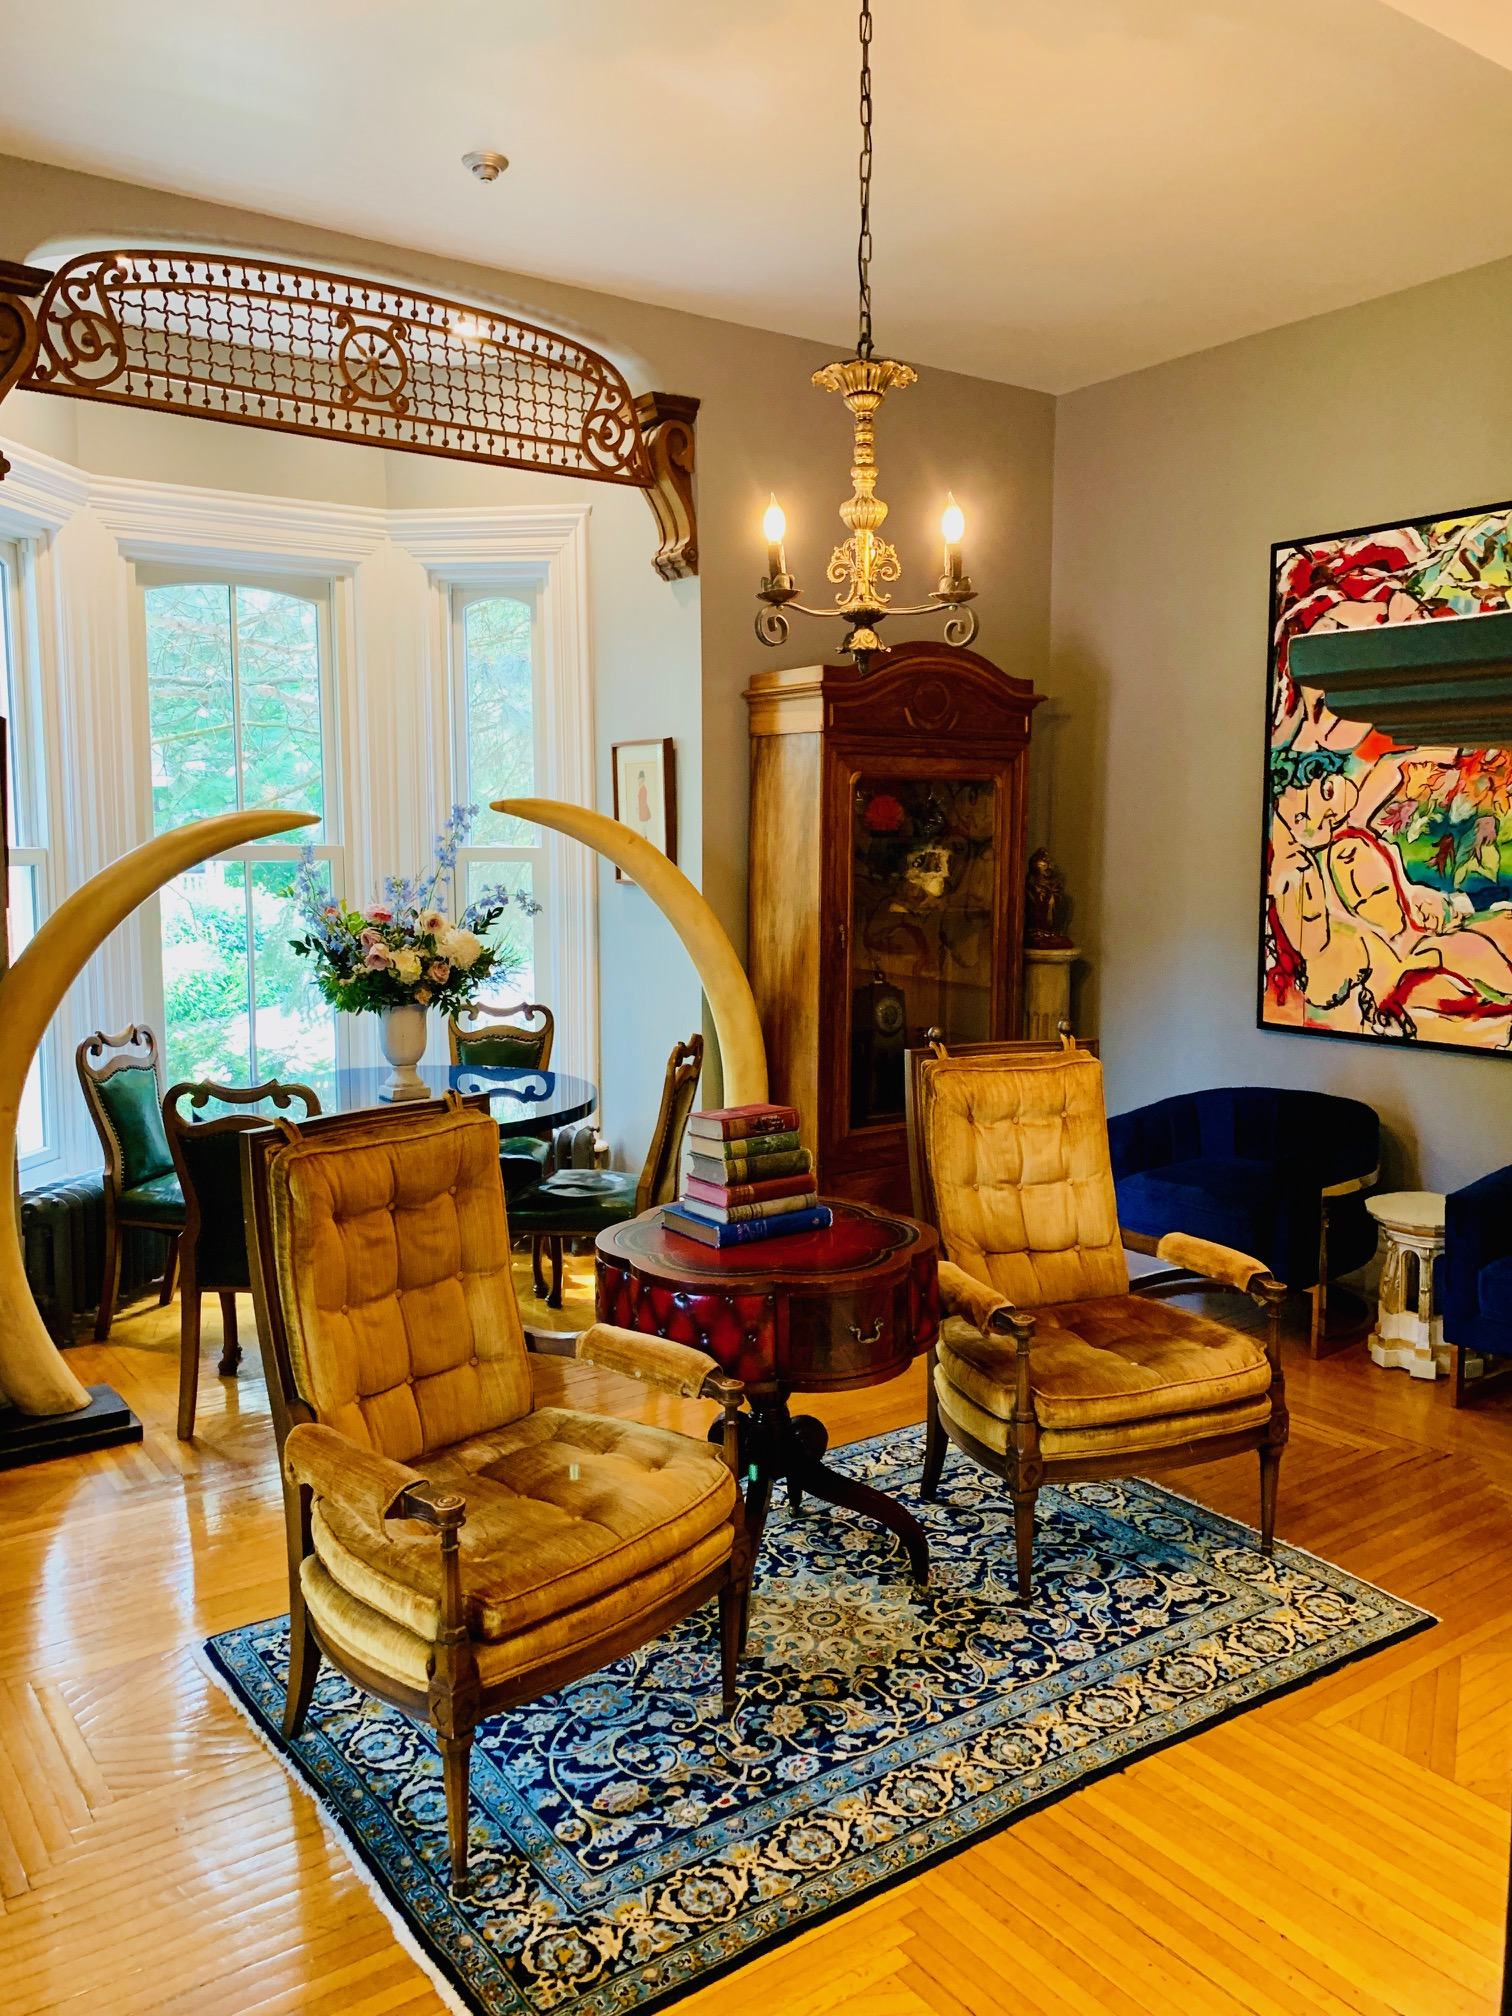 Eco-alert - the sitting room's dramatic tusks are replicas. The wonderful maple floors are (carefully restored) original.